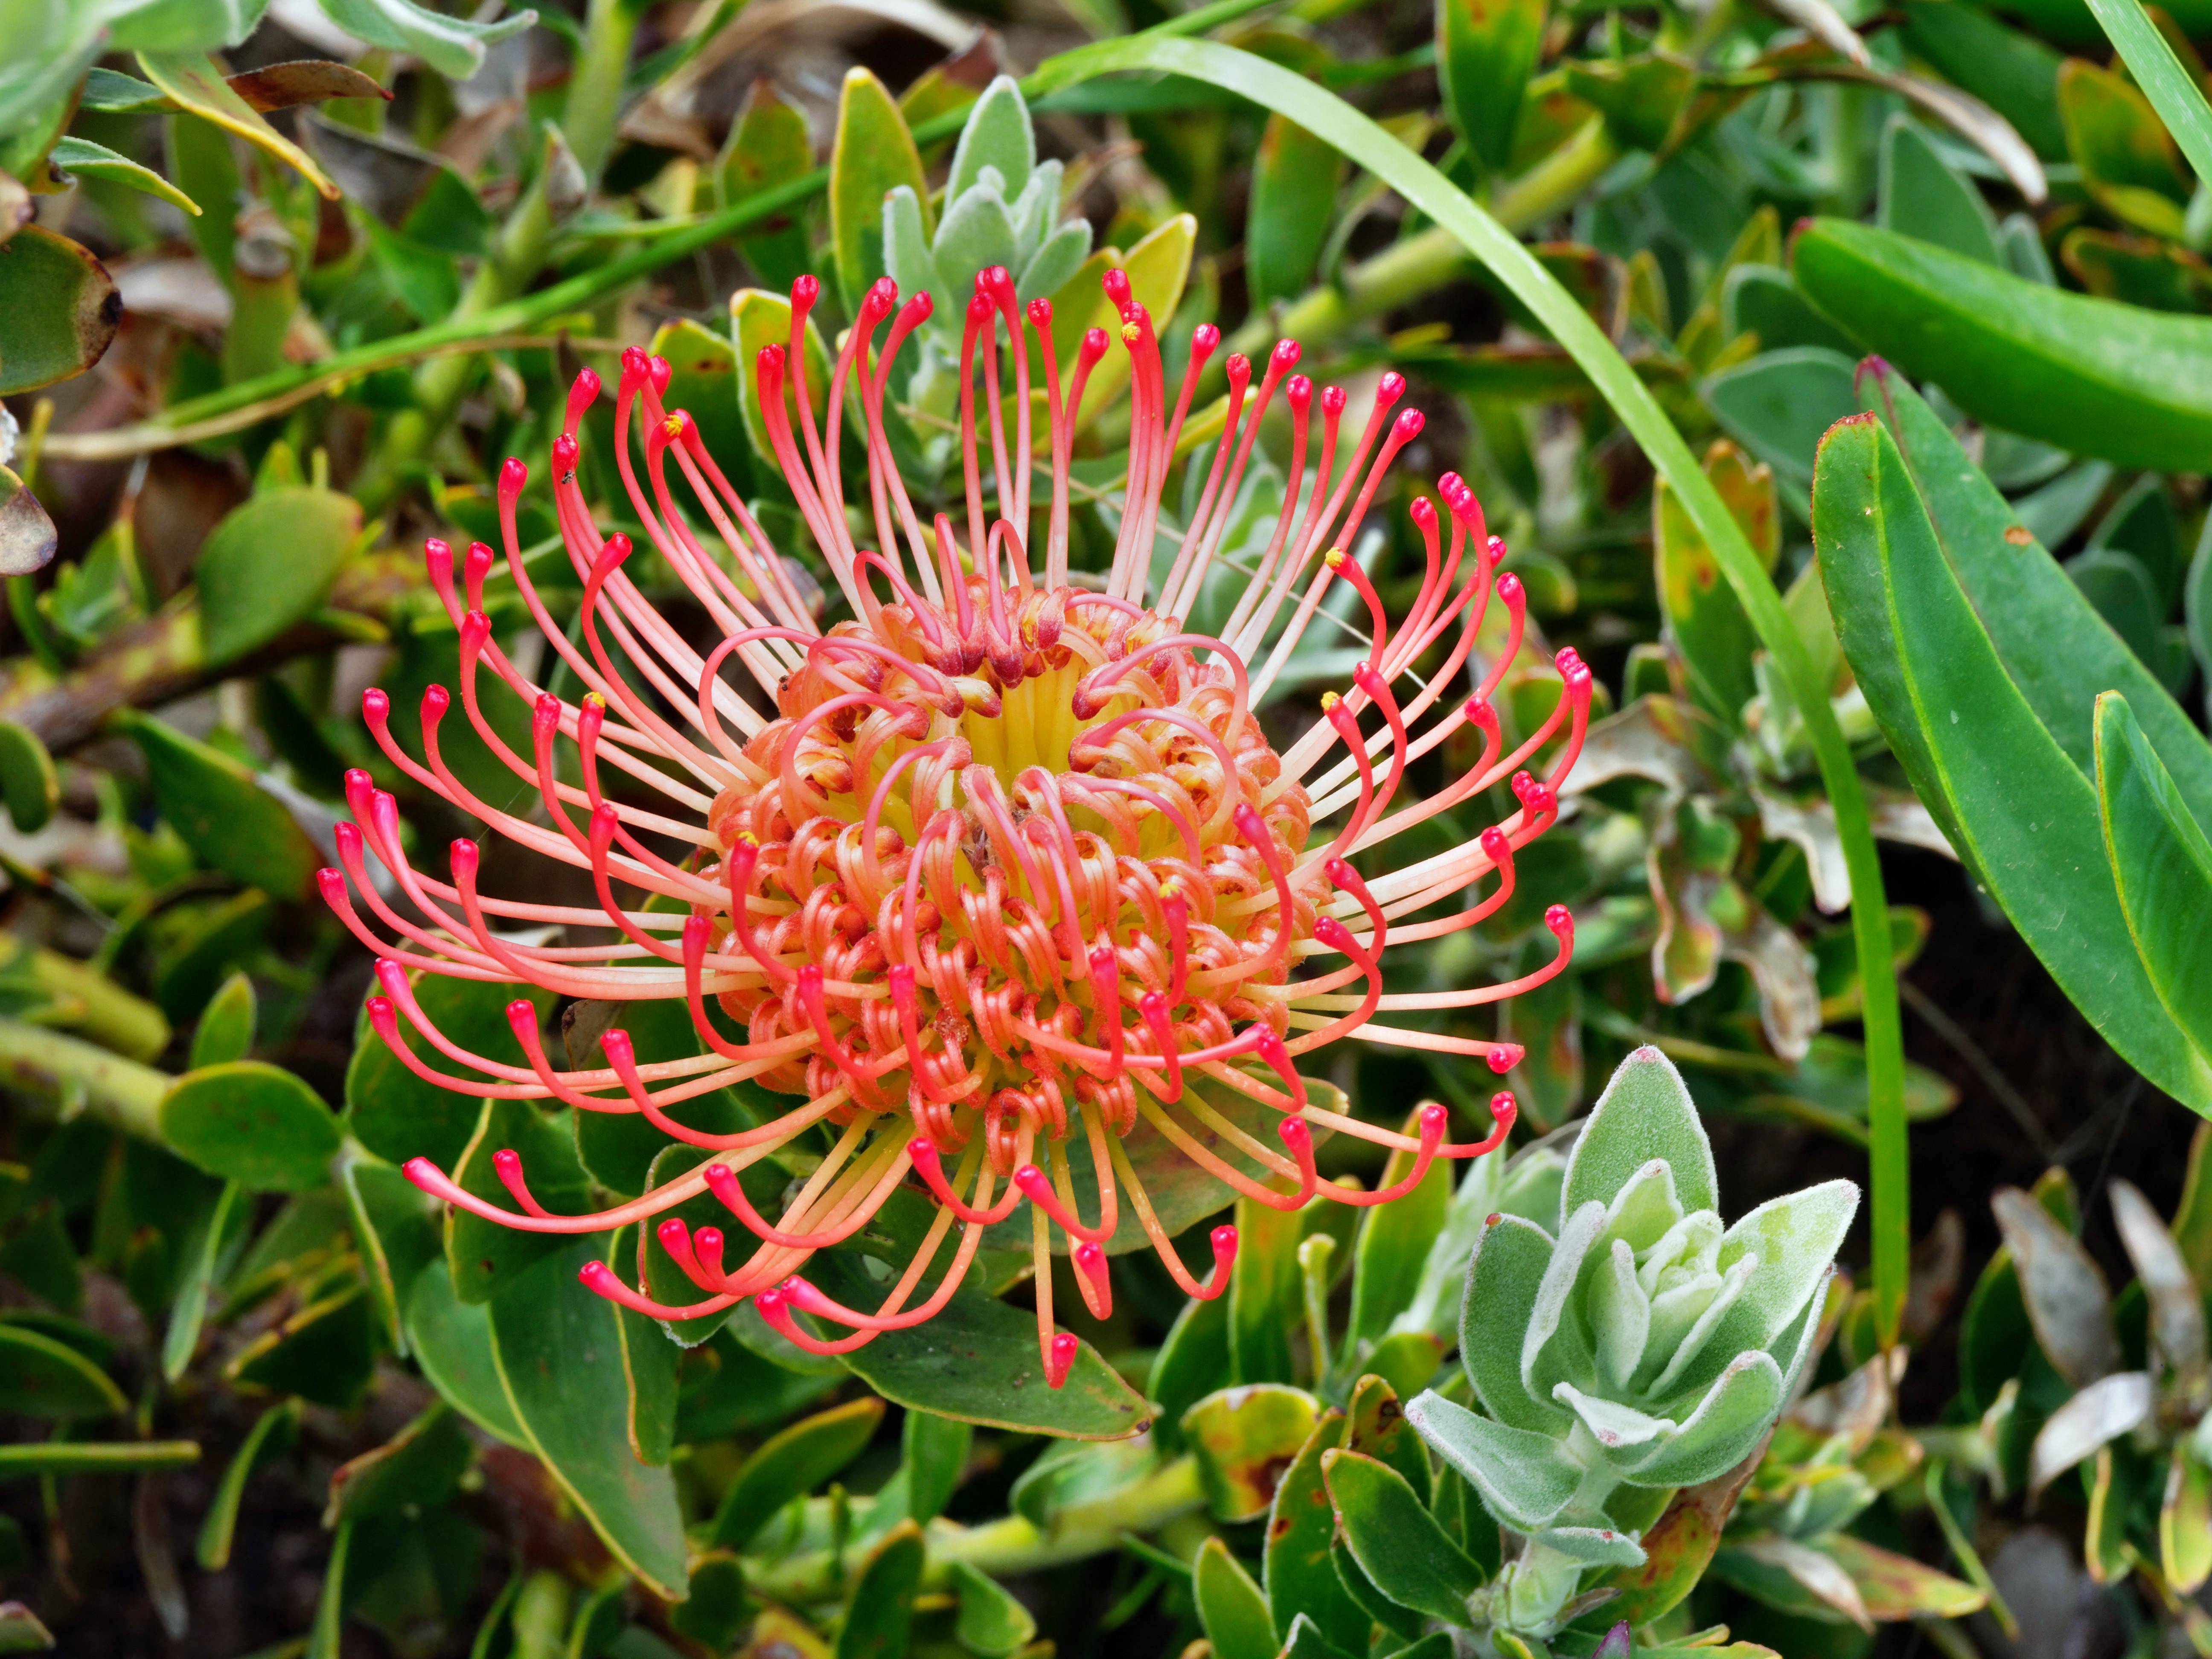 This should be Leucospermum-2.jpeg.  Is it missing?